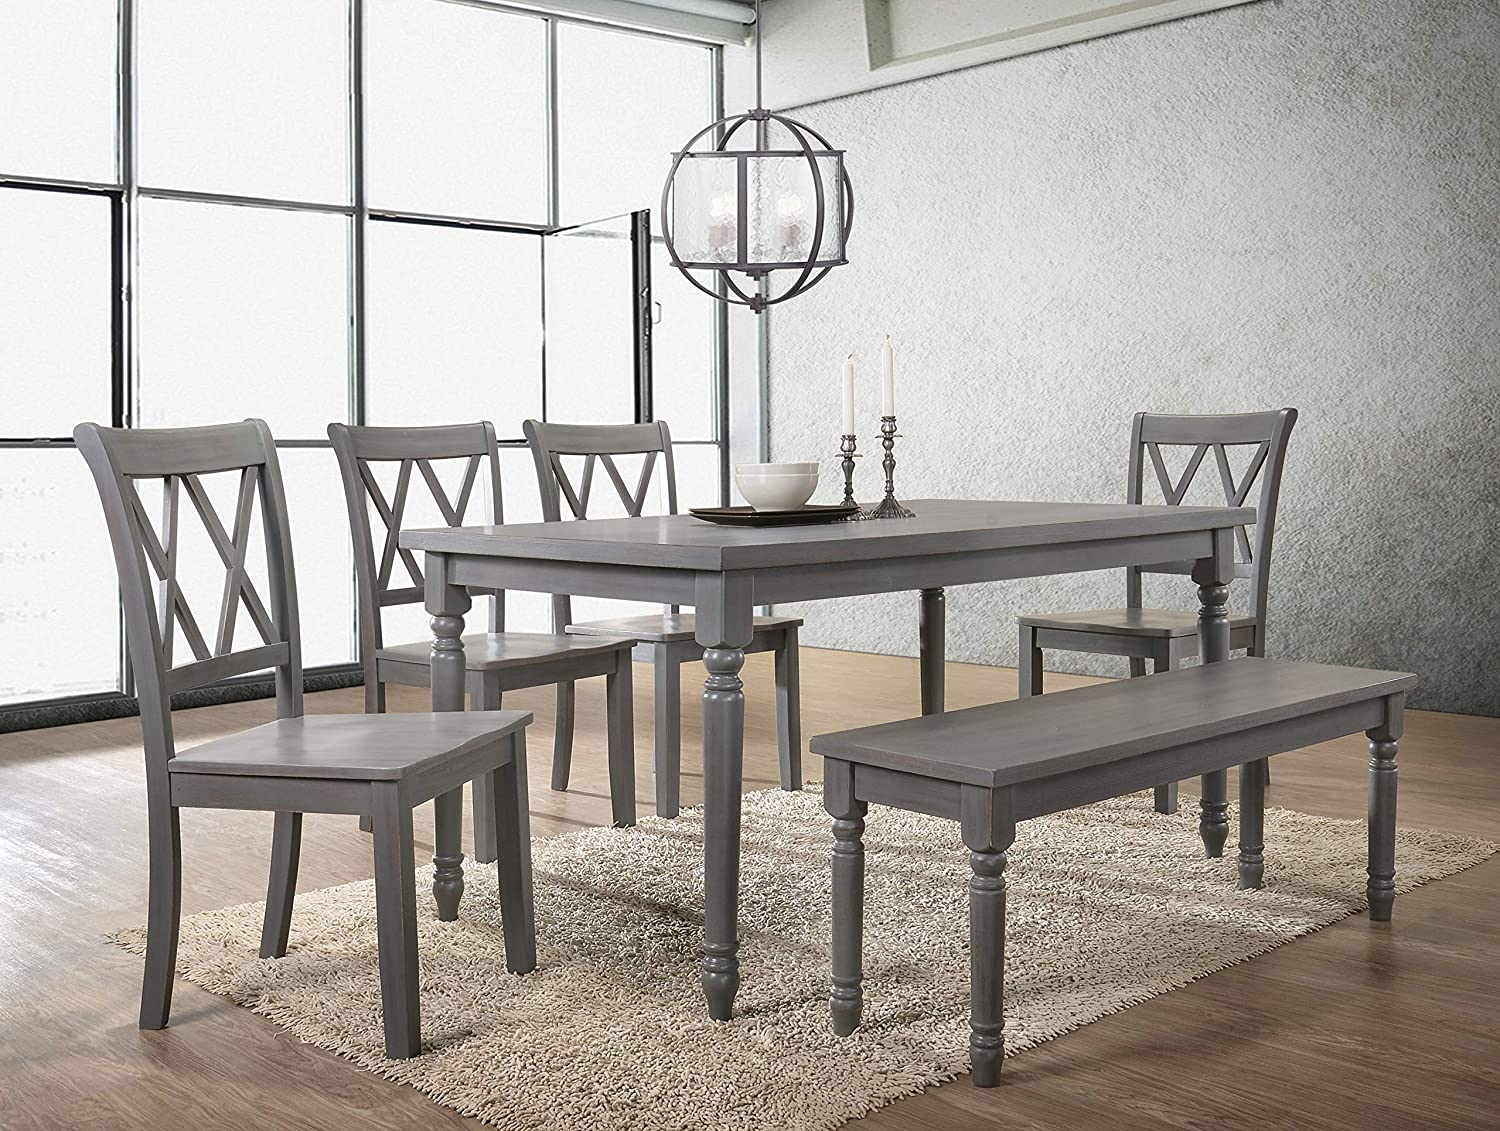 Remarkable Best Master Furniture Paige 6 Pcs Dining Set With Bench Rustic Grey Customarchery Wood Chair Design Ideas Customarcherynet